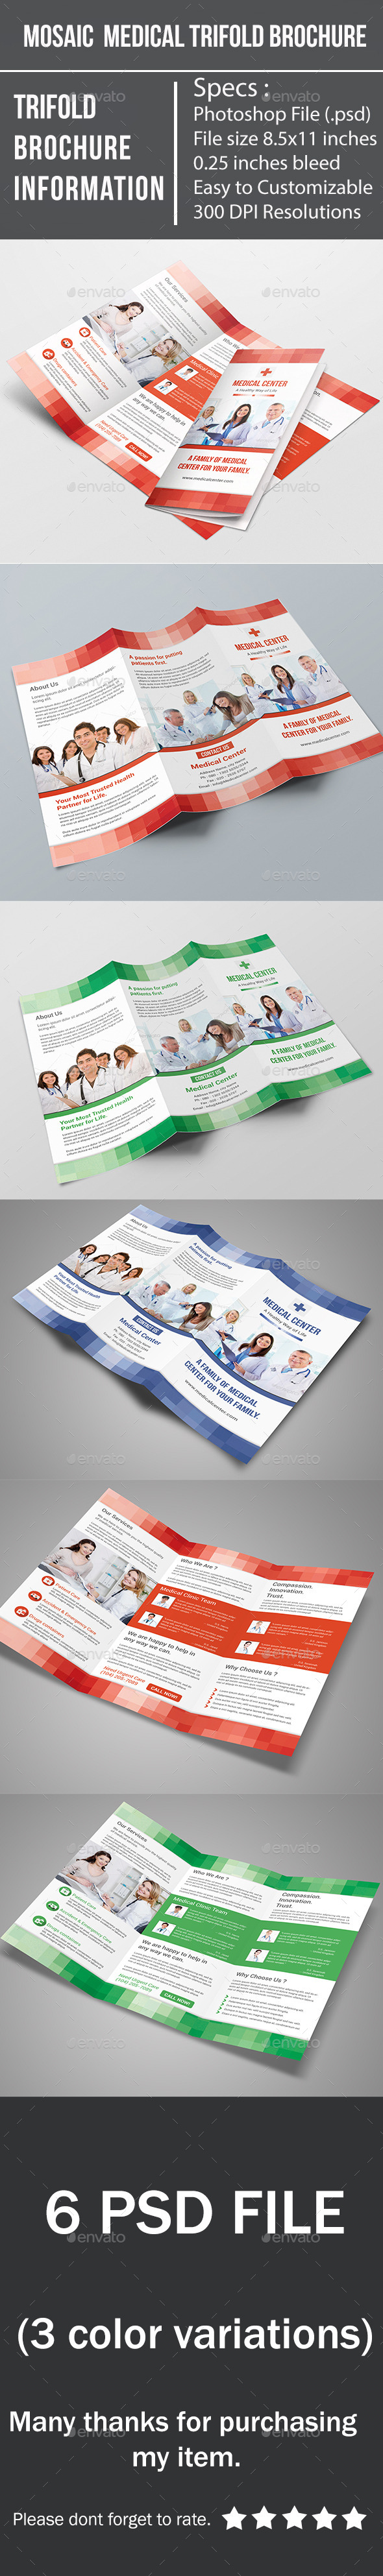 Mosaic Medical Trifold Brochure - Corporate Brochures